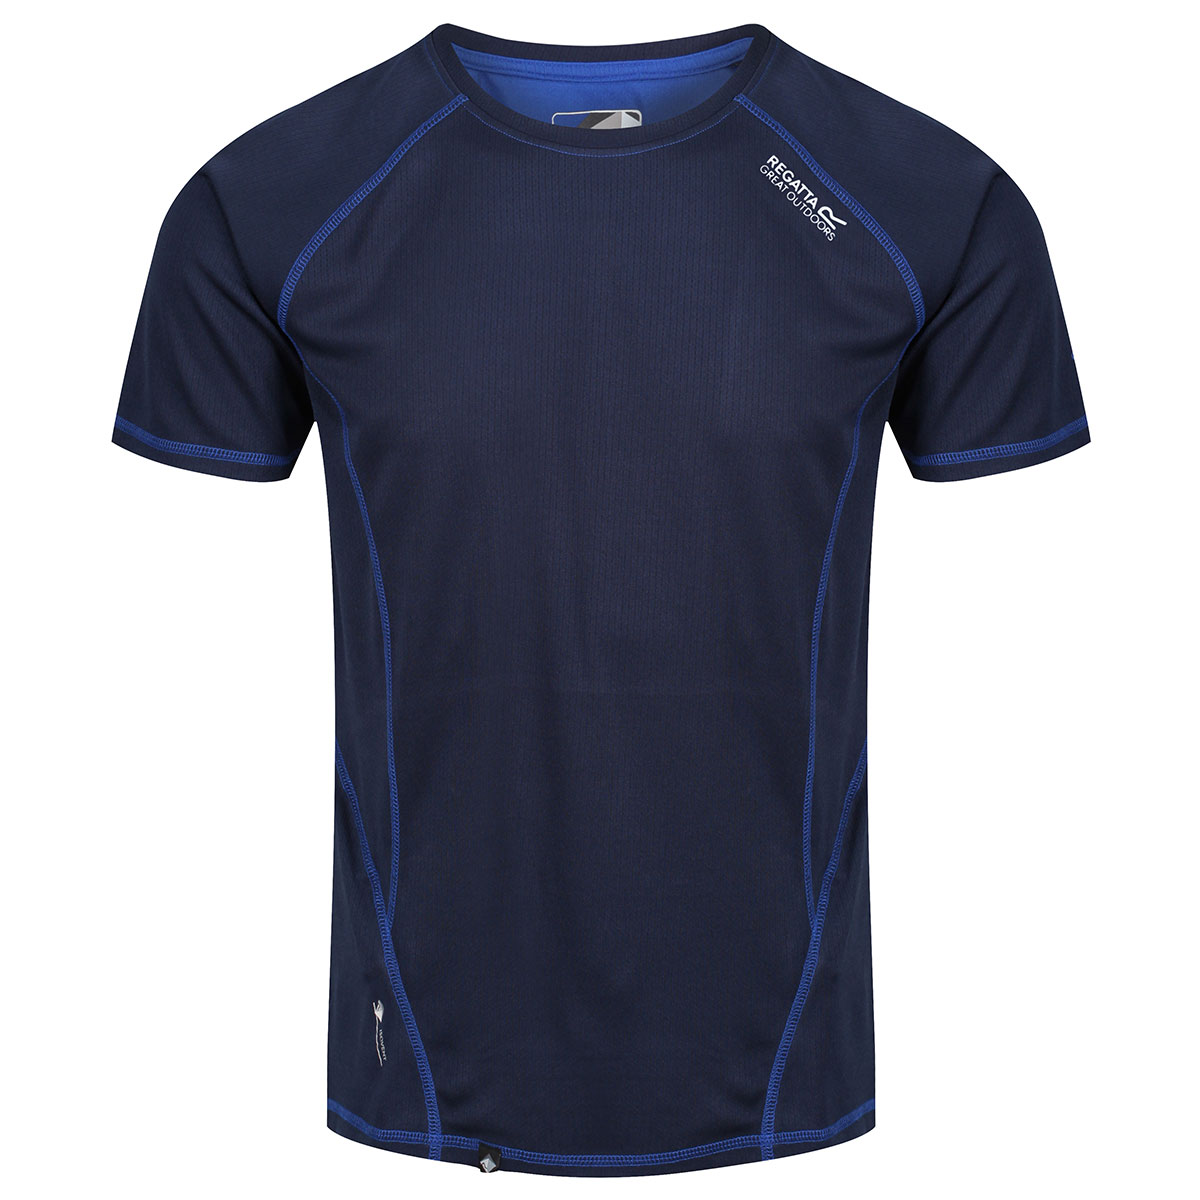 Regatta Mens Virda II Lightweight Base Layer Isovent T-Shirt 58/% OFF RRP